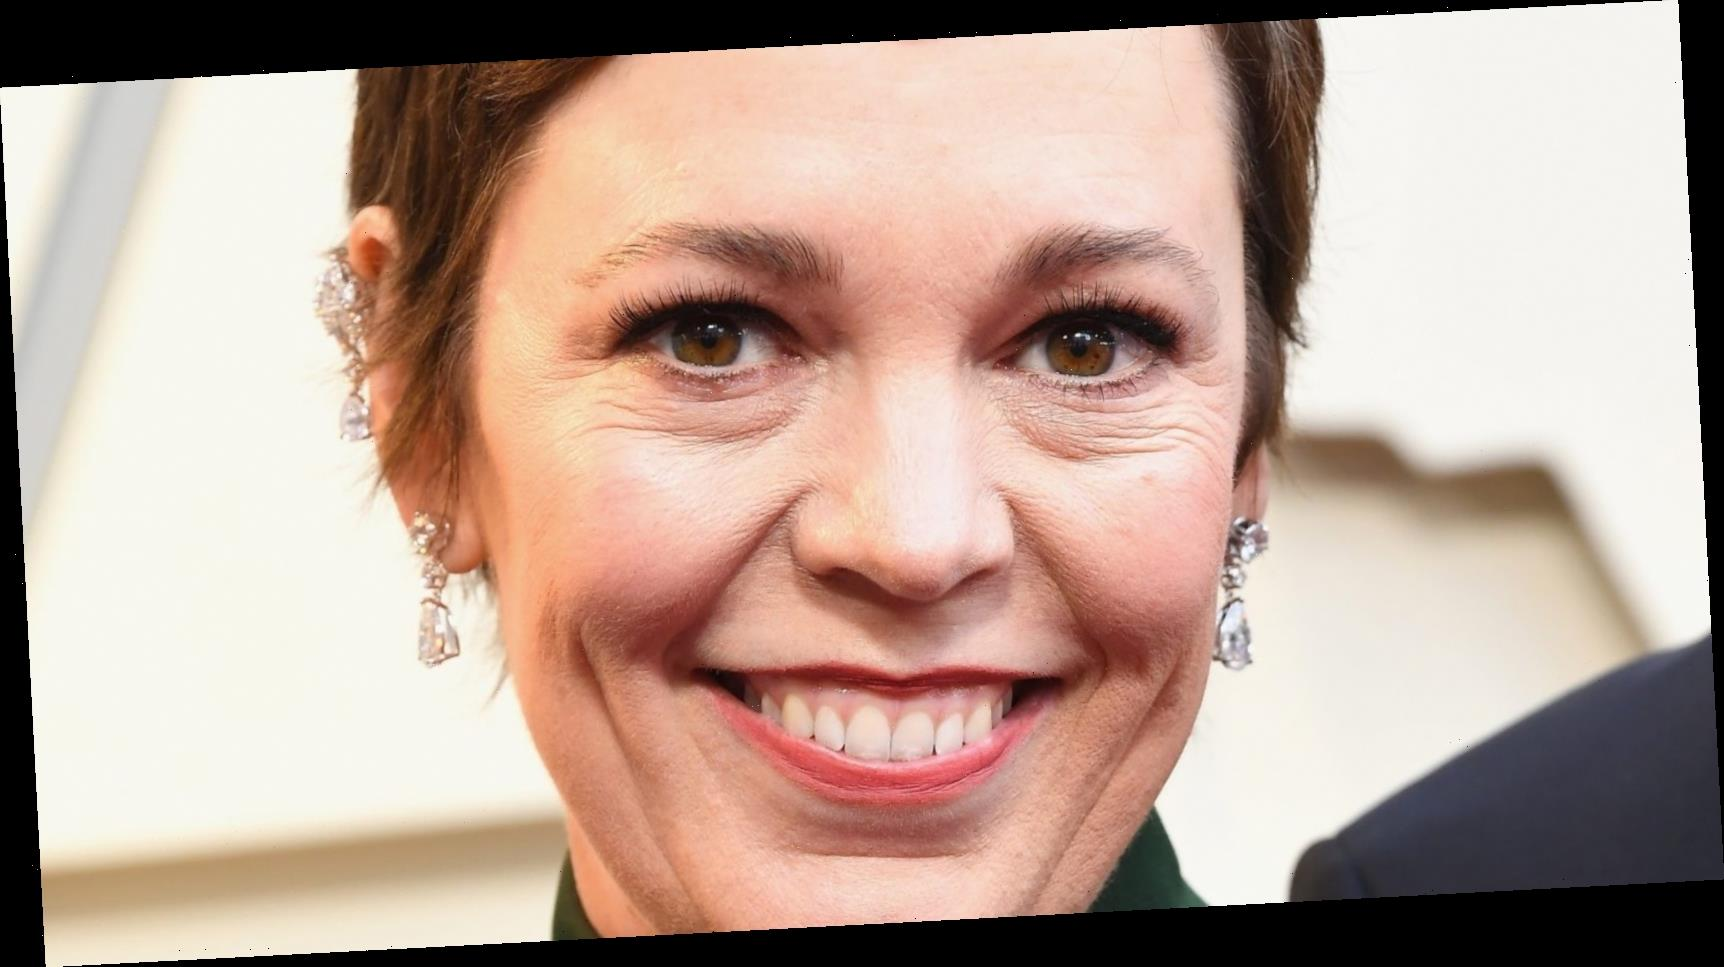 Olivia Colman has made an unexpected career move, and we're very into it (obviously)